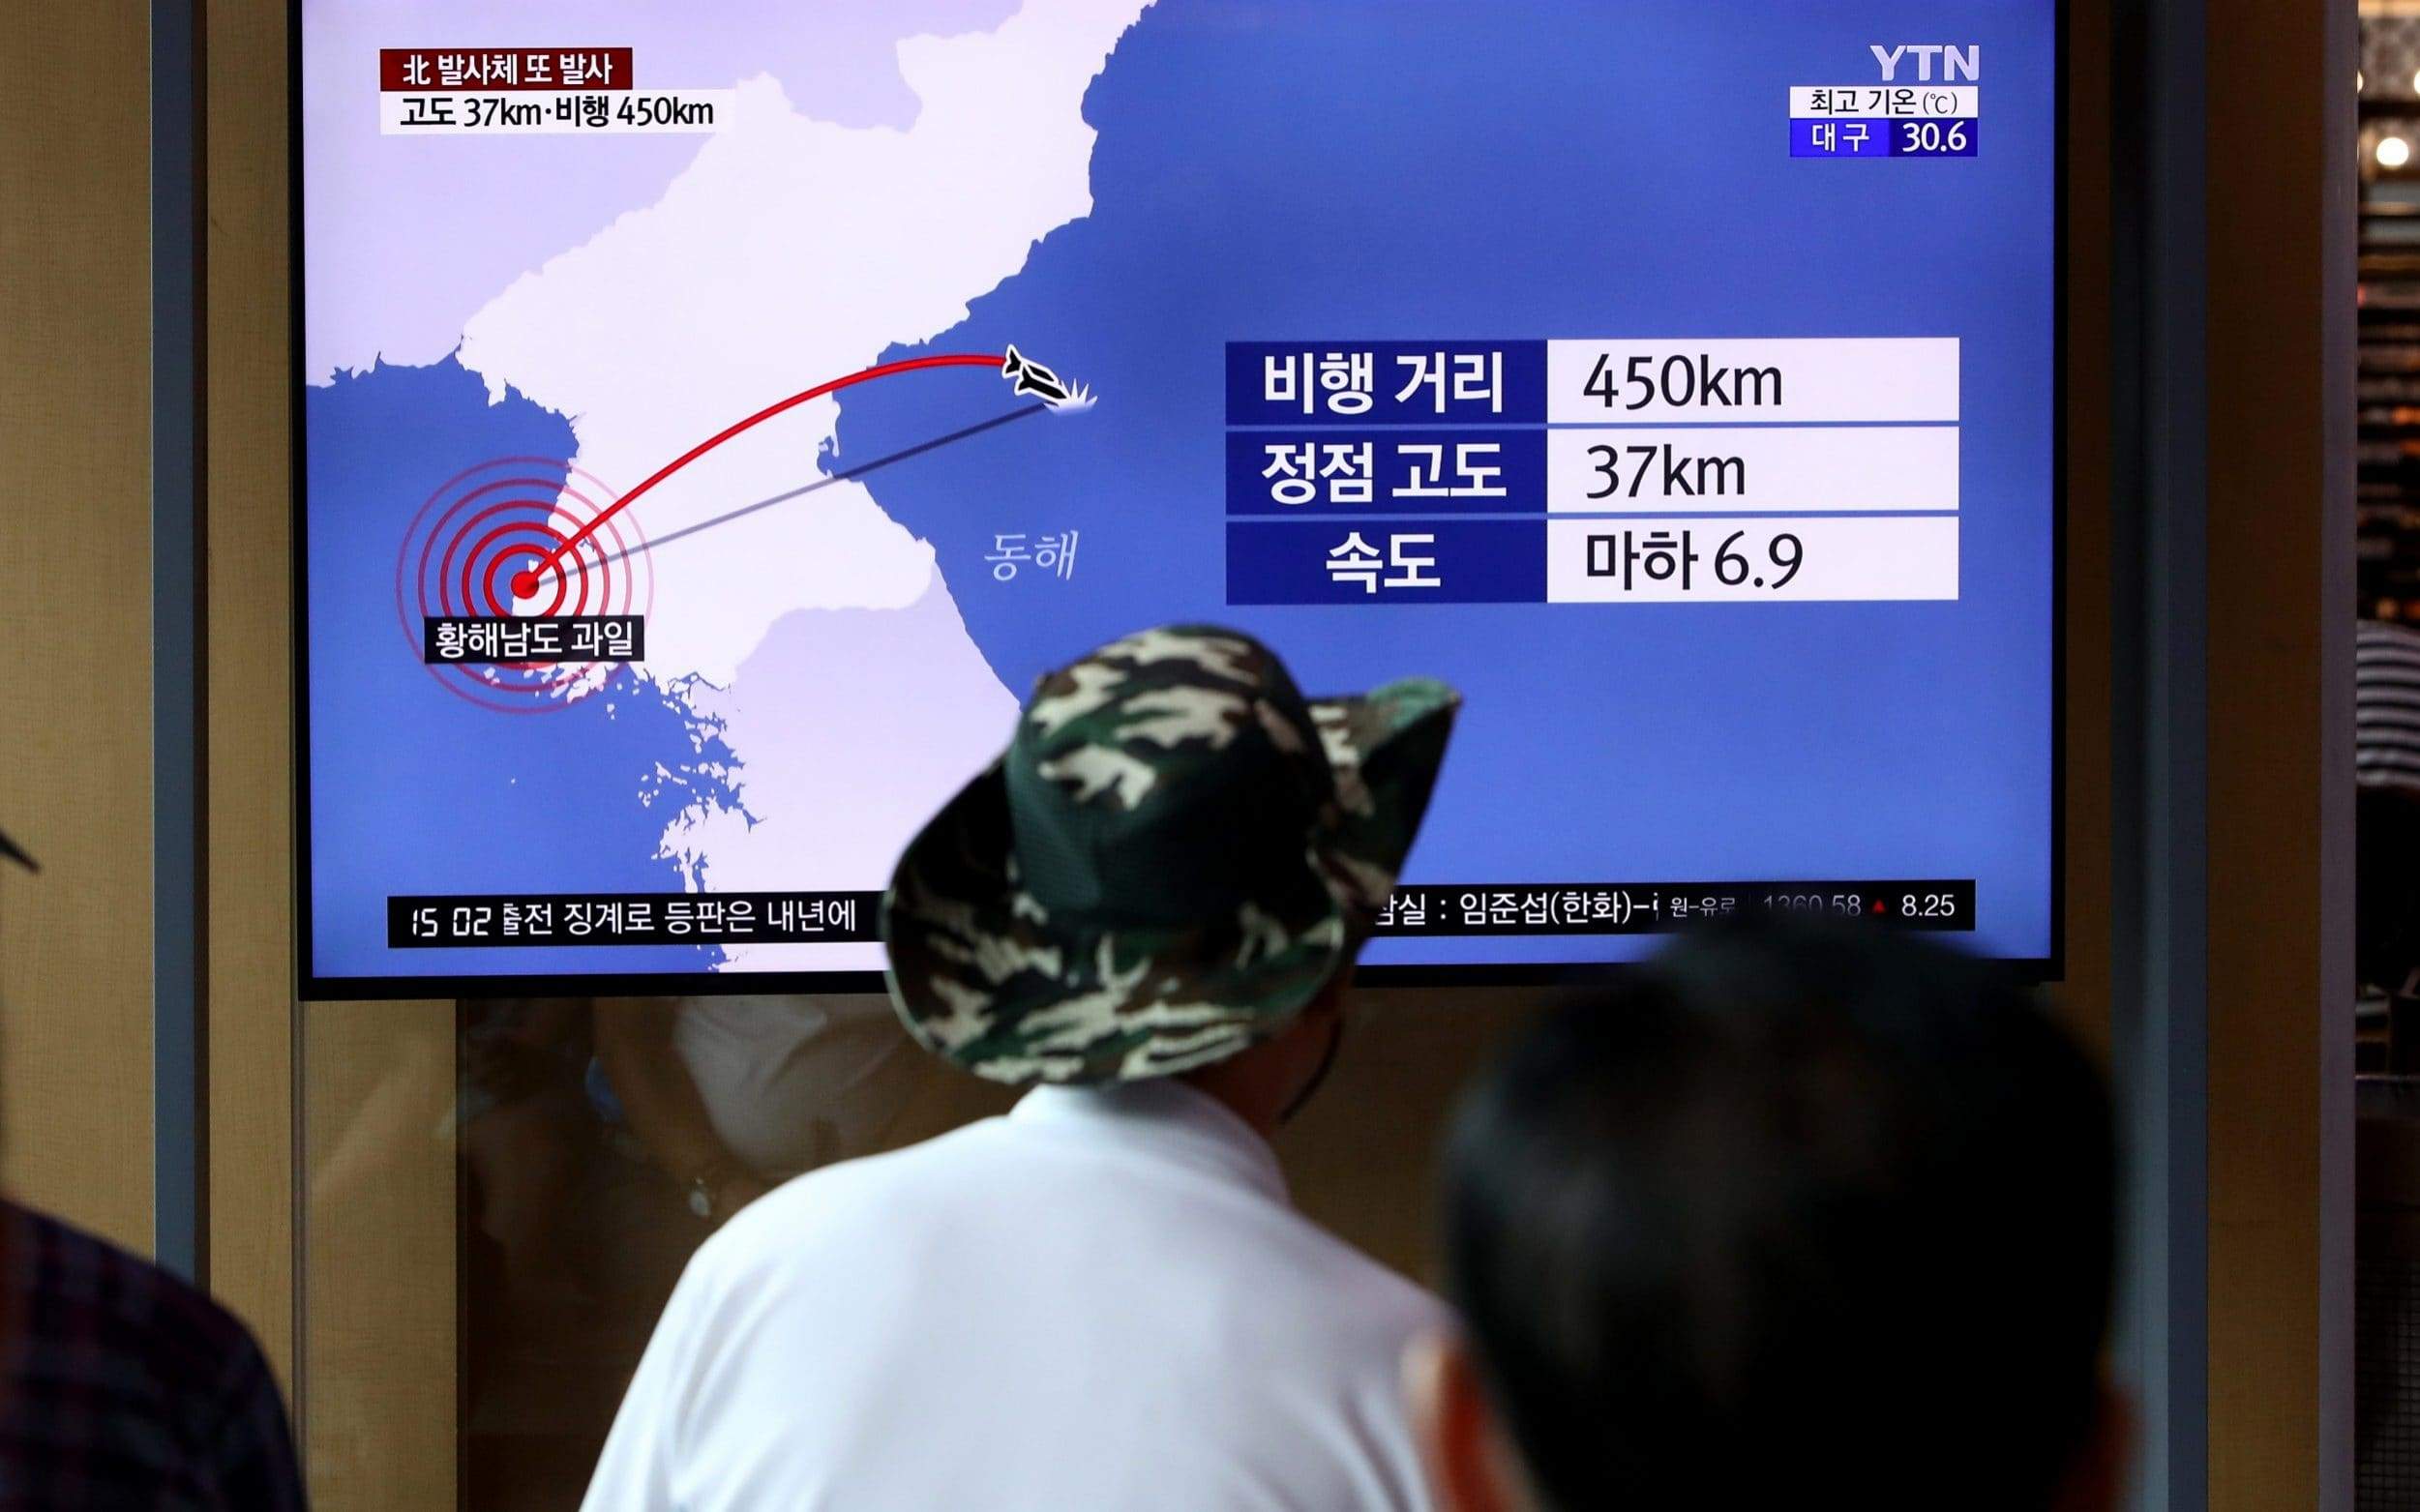 Analysis: North Koreas missile tests point to end of nuclear talks